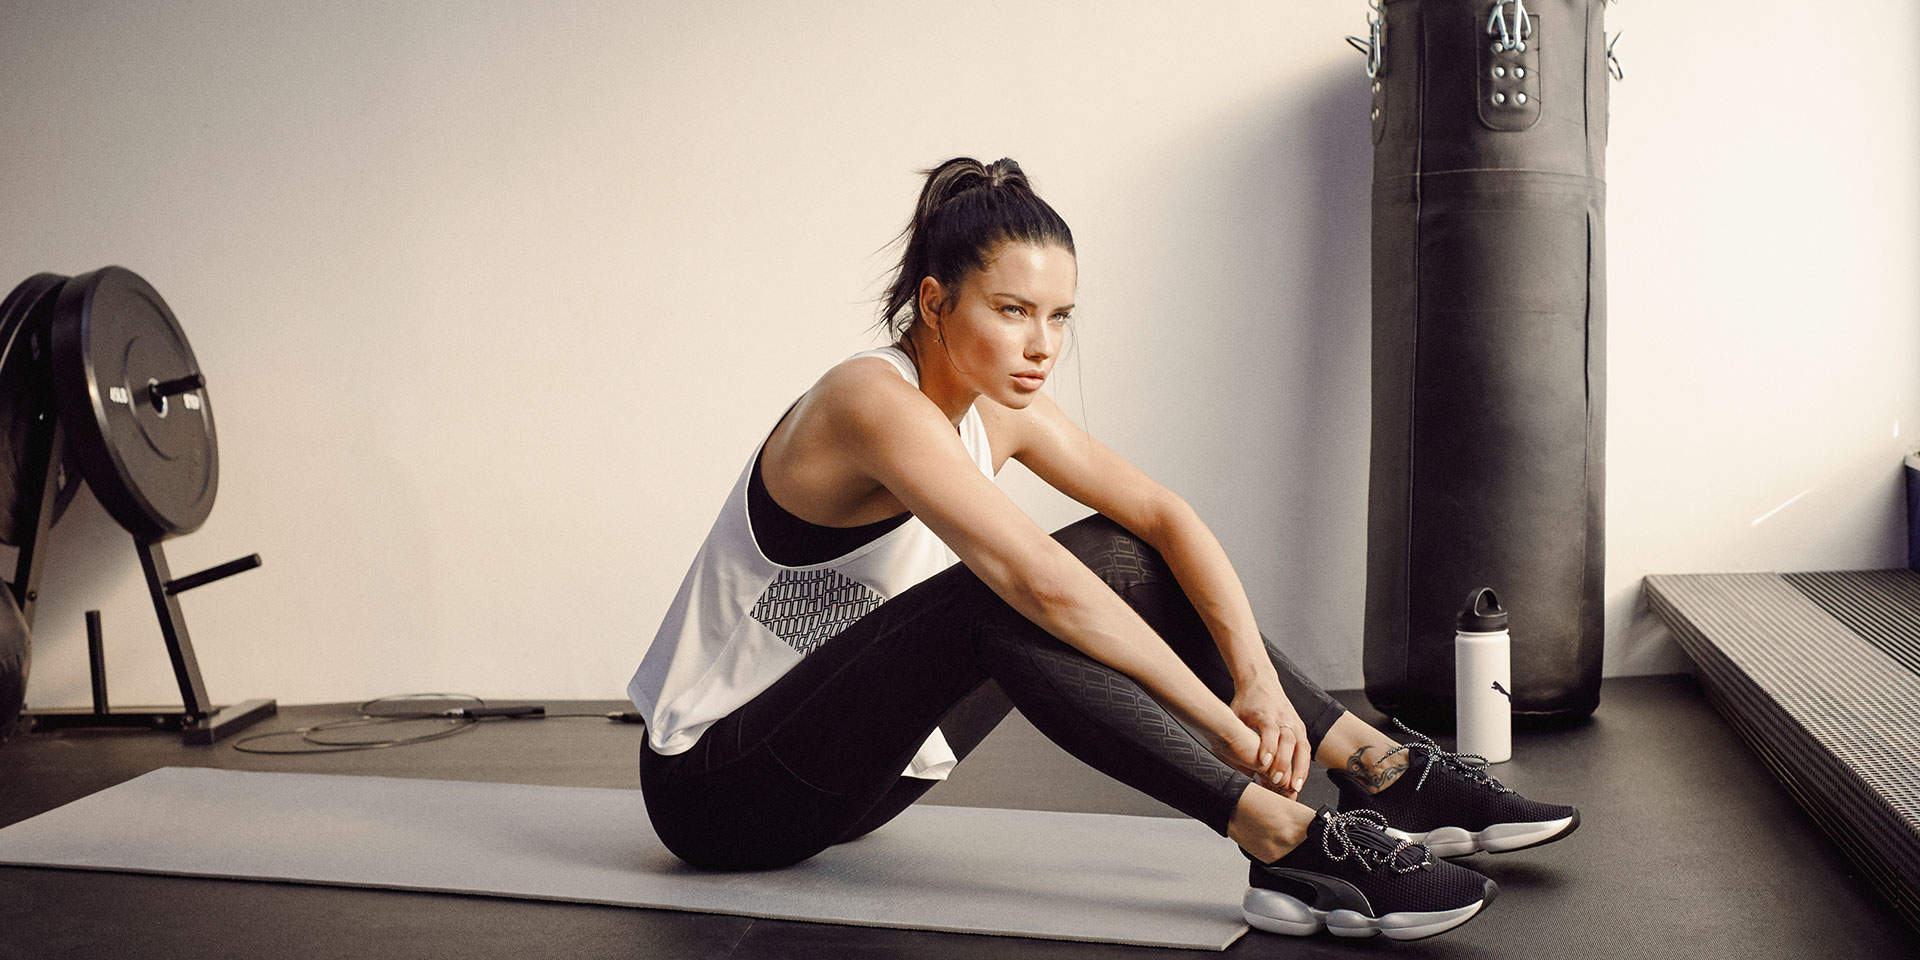 PUMA® - International Supermodel Adriana Lima sports Mode XT